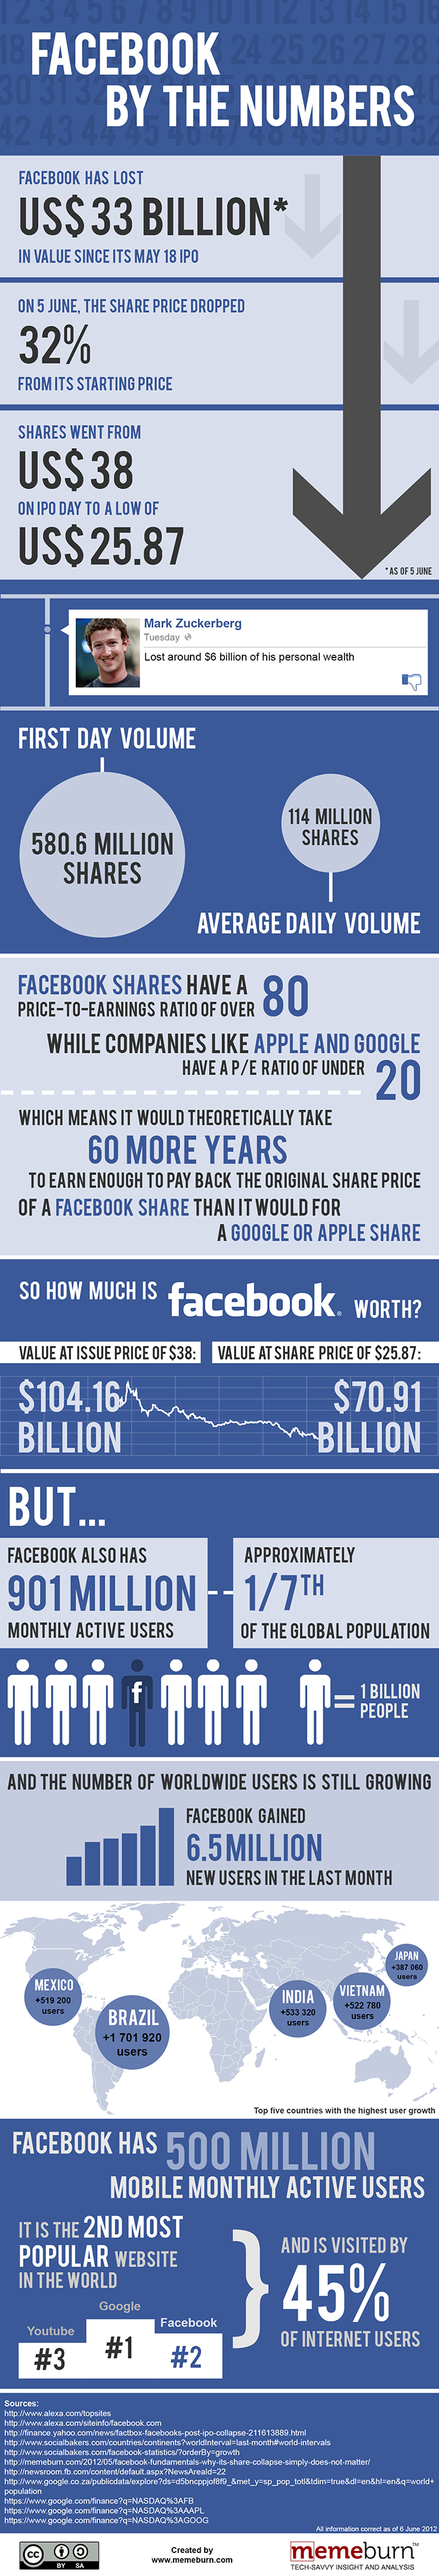 Notorious Life of Facebook: Recent Infographics - BOCO Creative Blog